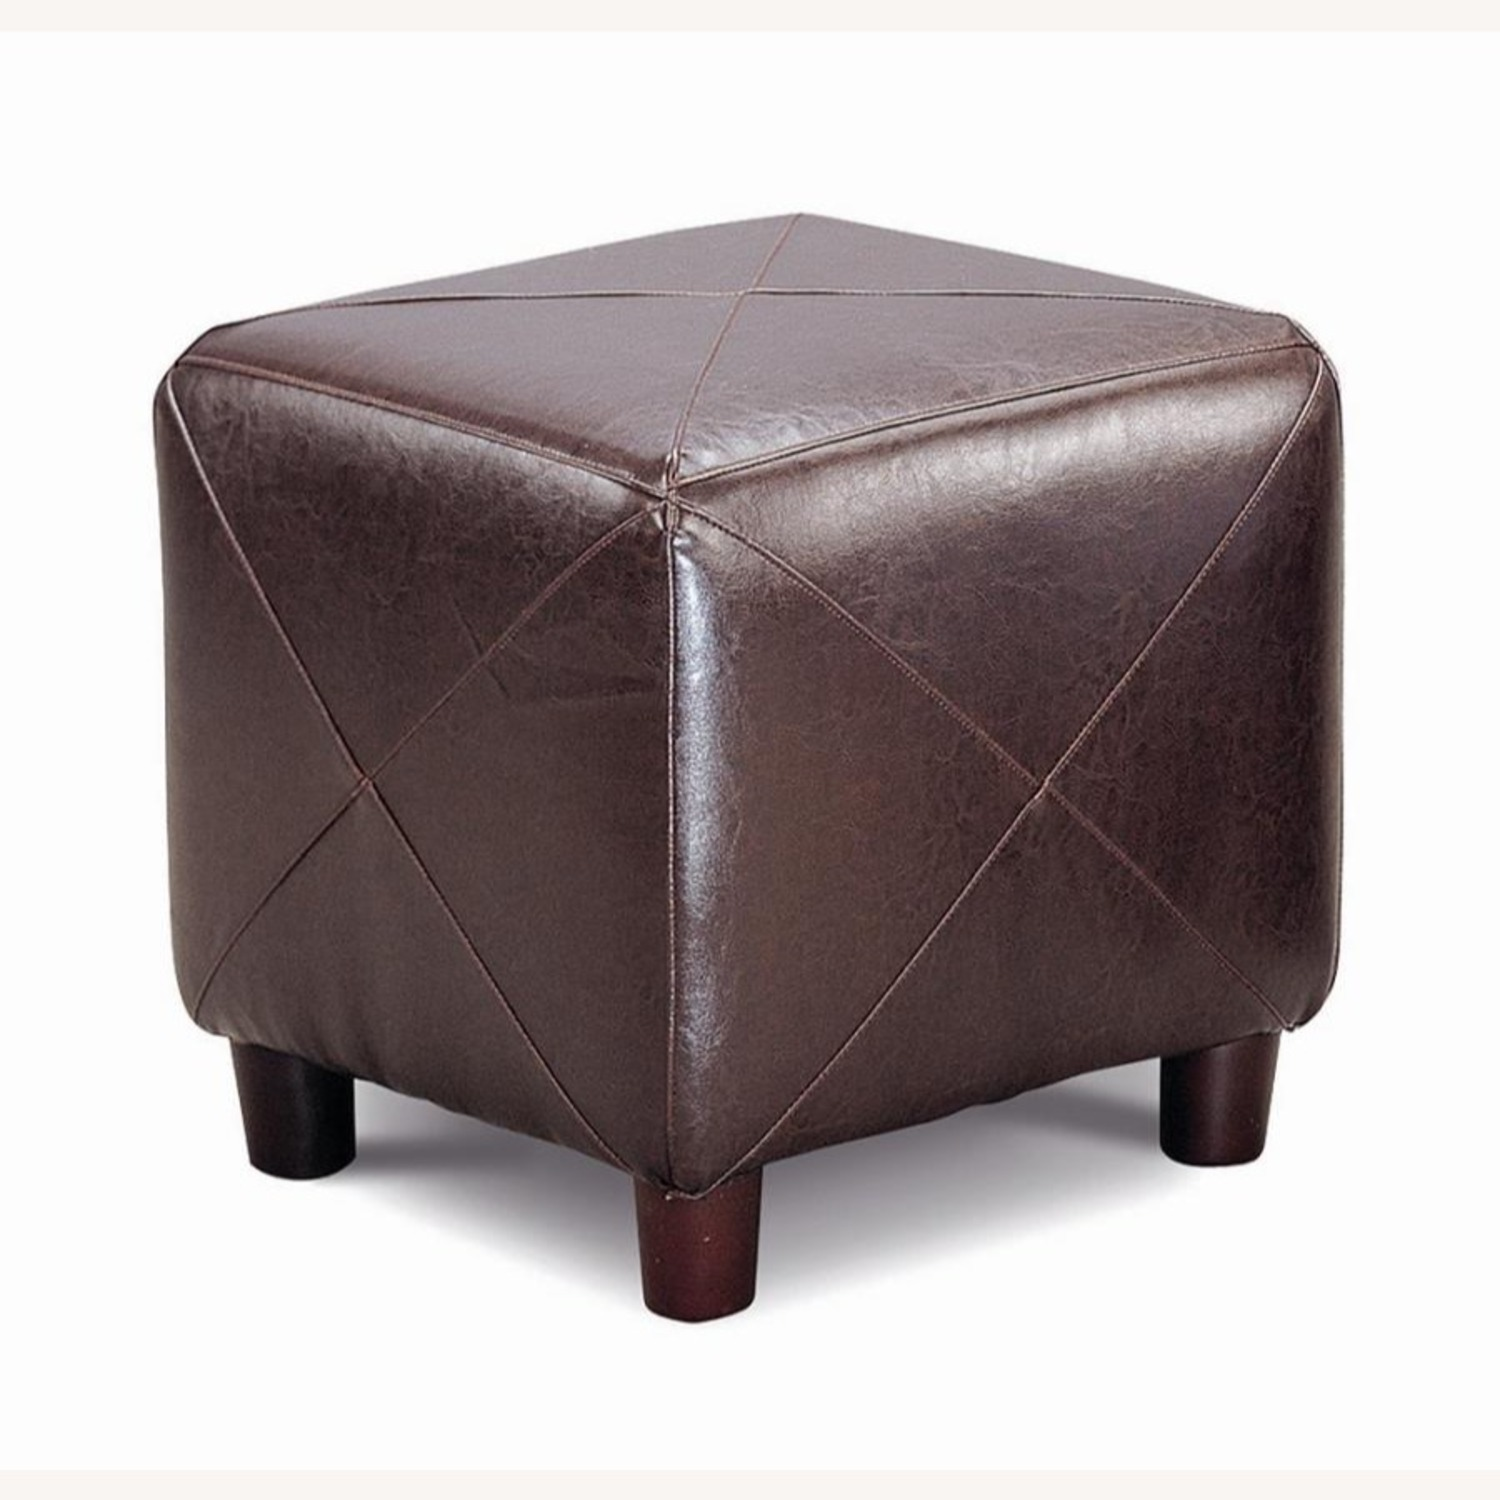 Ottoman In Dark Brown W/ Tapered Legs - image-0